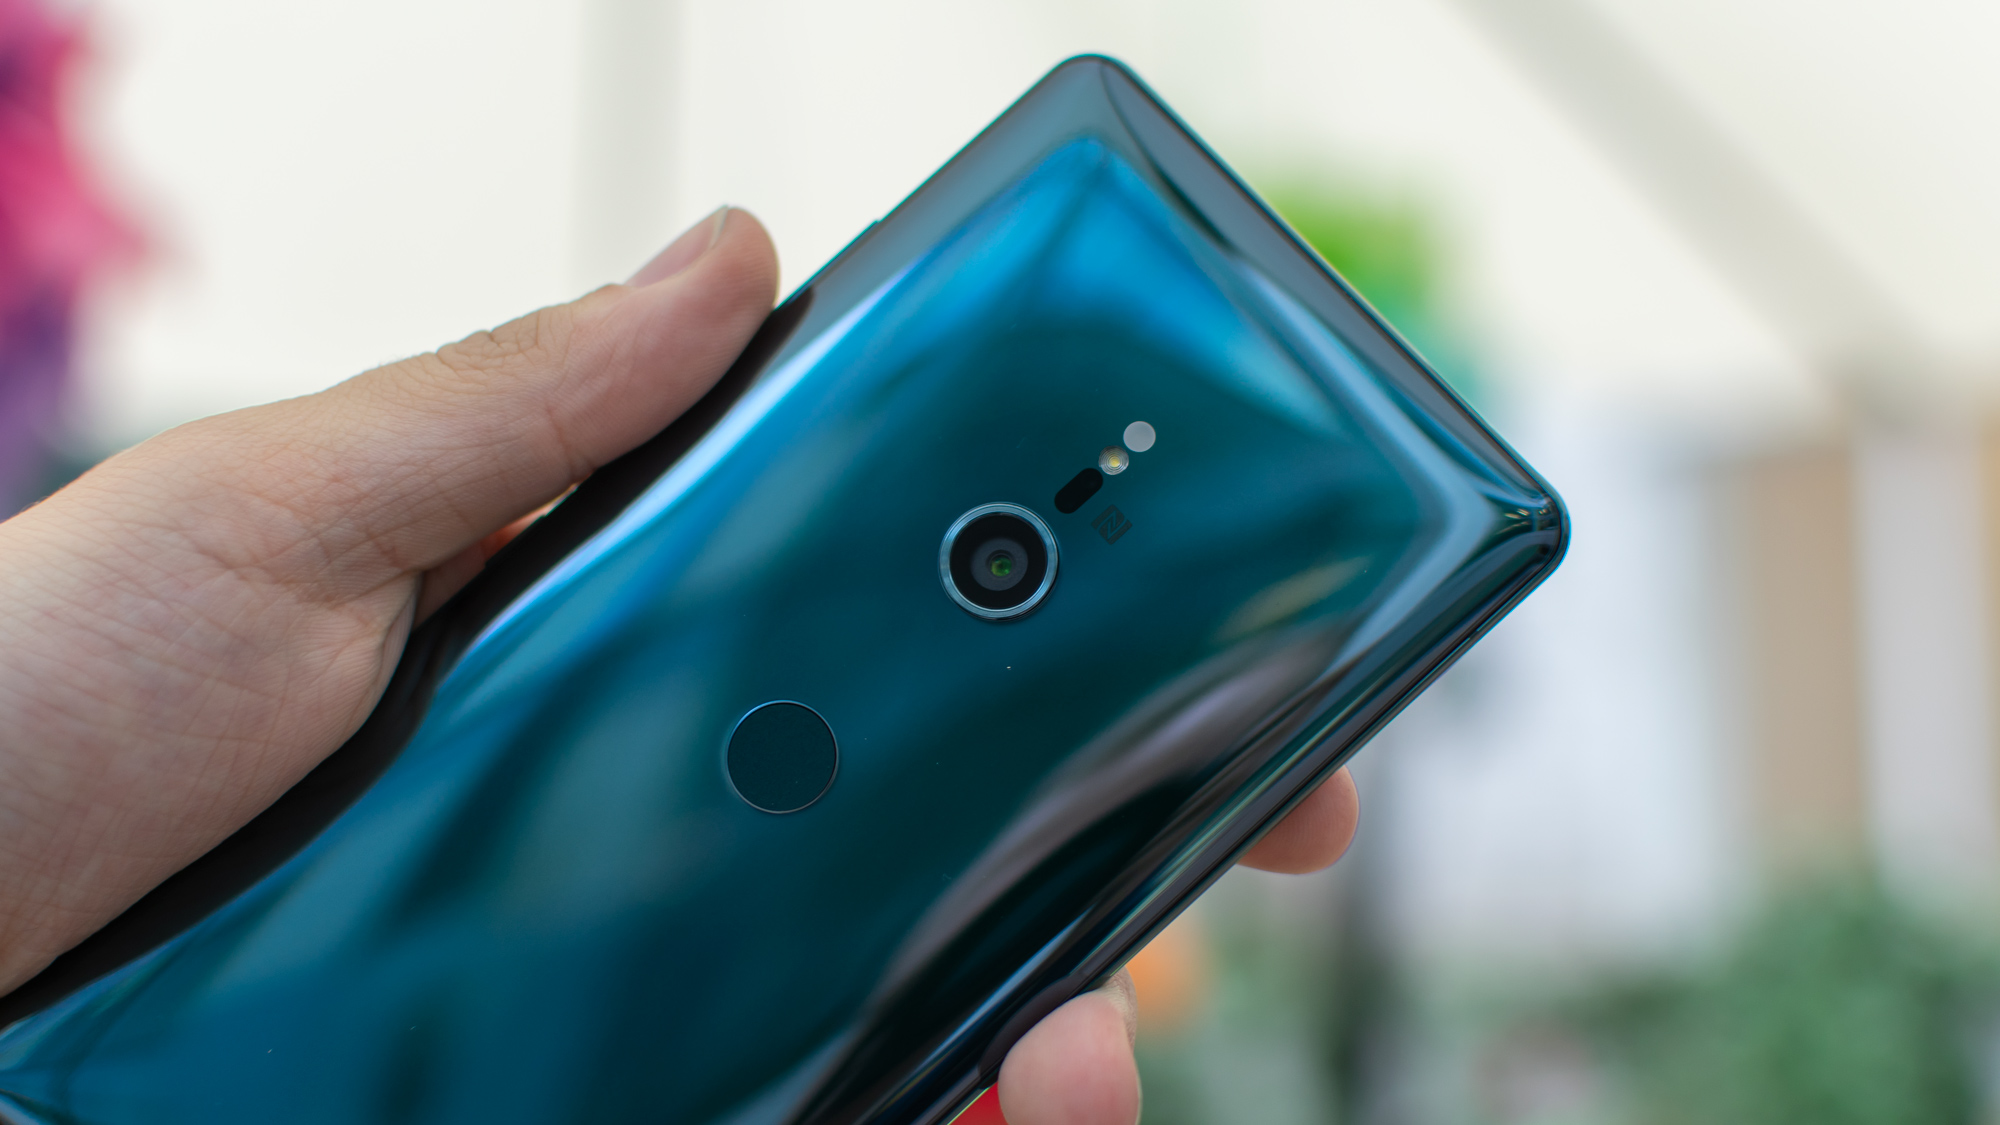 Sony Xperia XZ3 with OLED HDR Display & Android 9.0 Pie Officially Launched